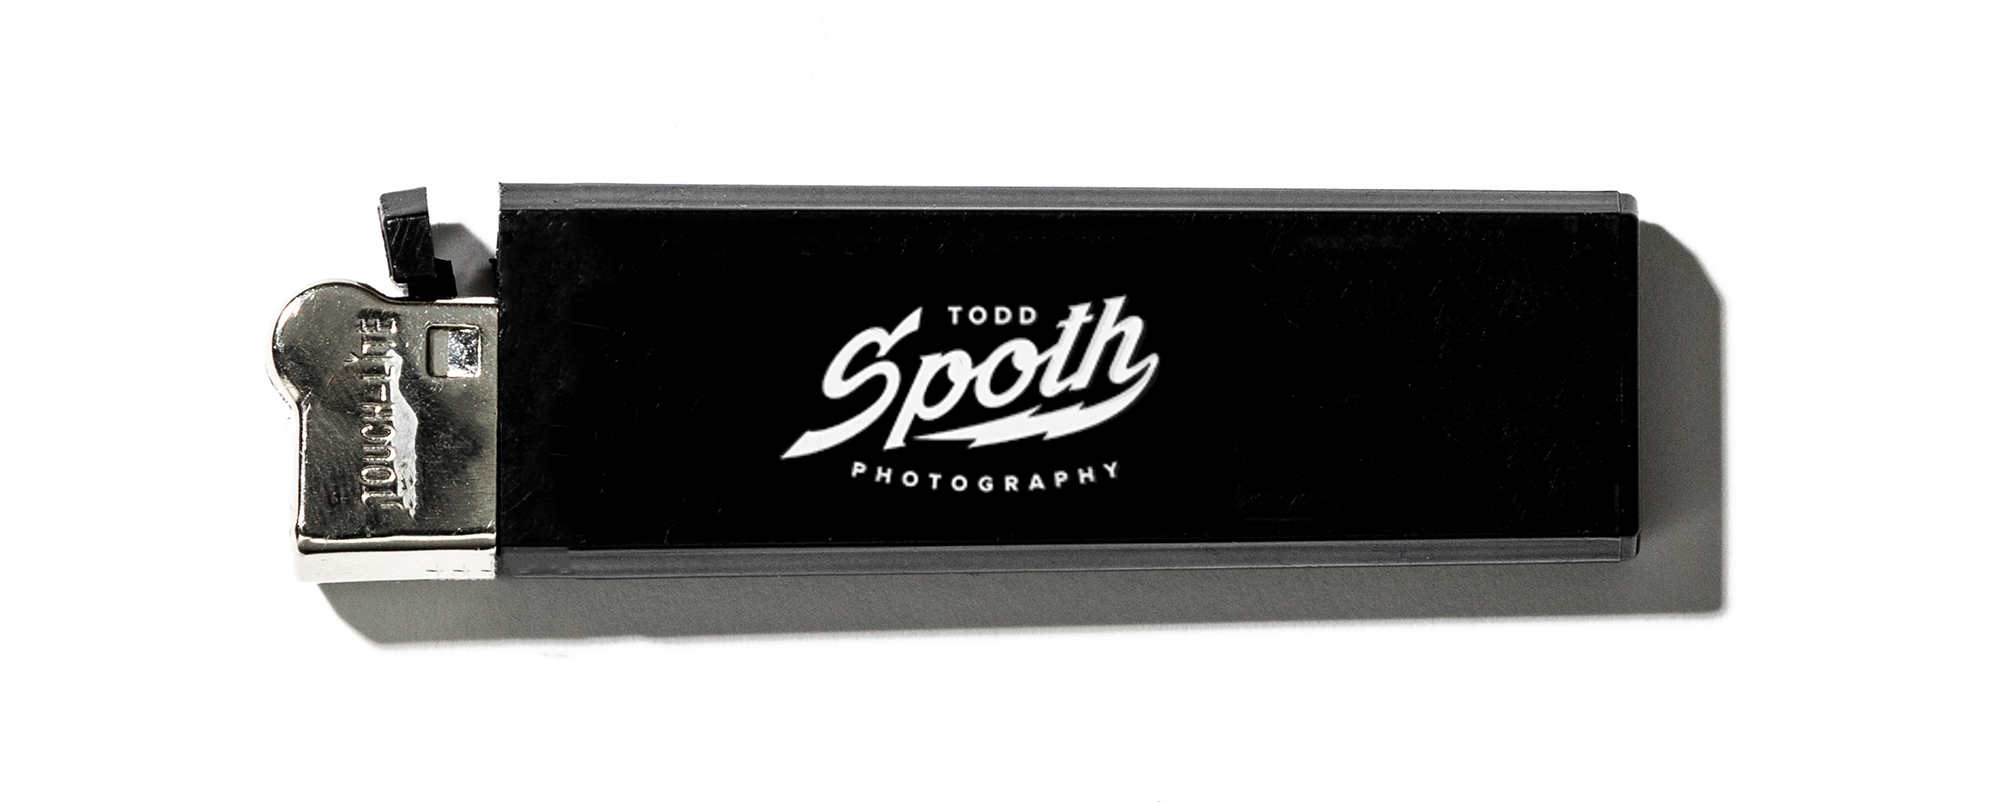 TODD SPOTH PROMO LIGHTER (2015)